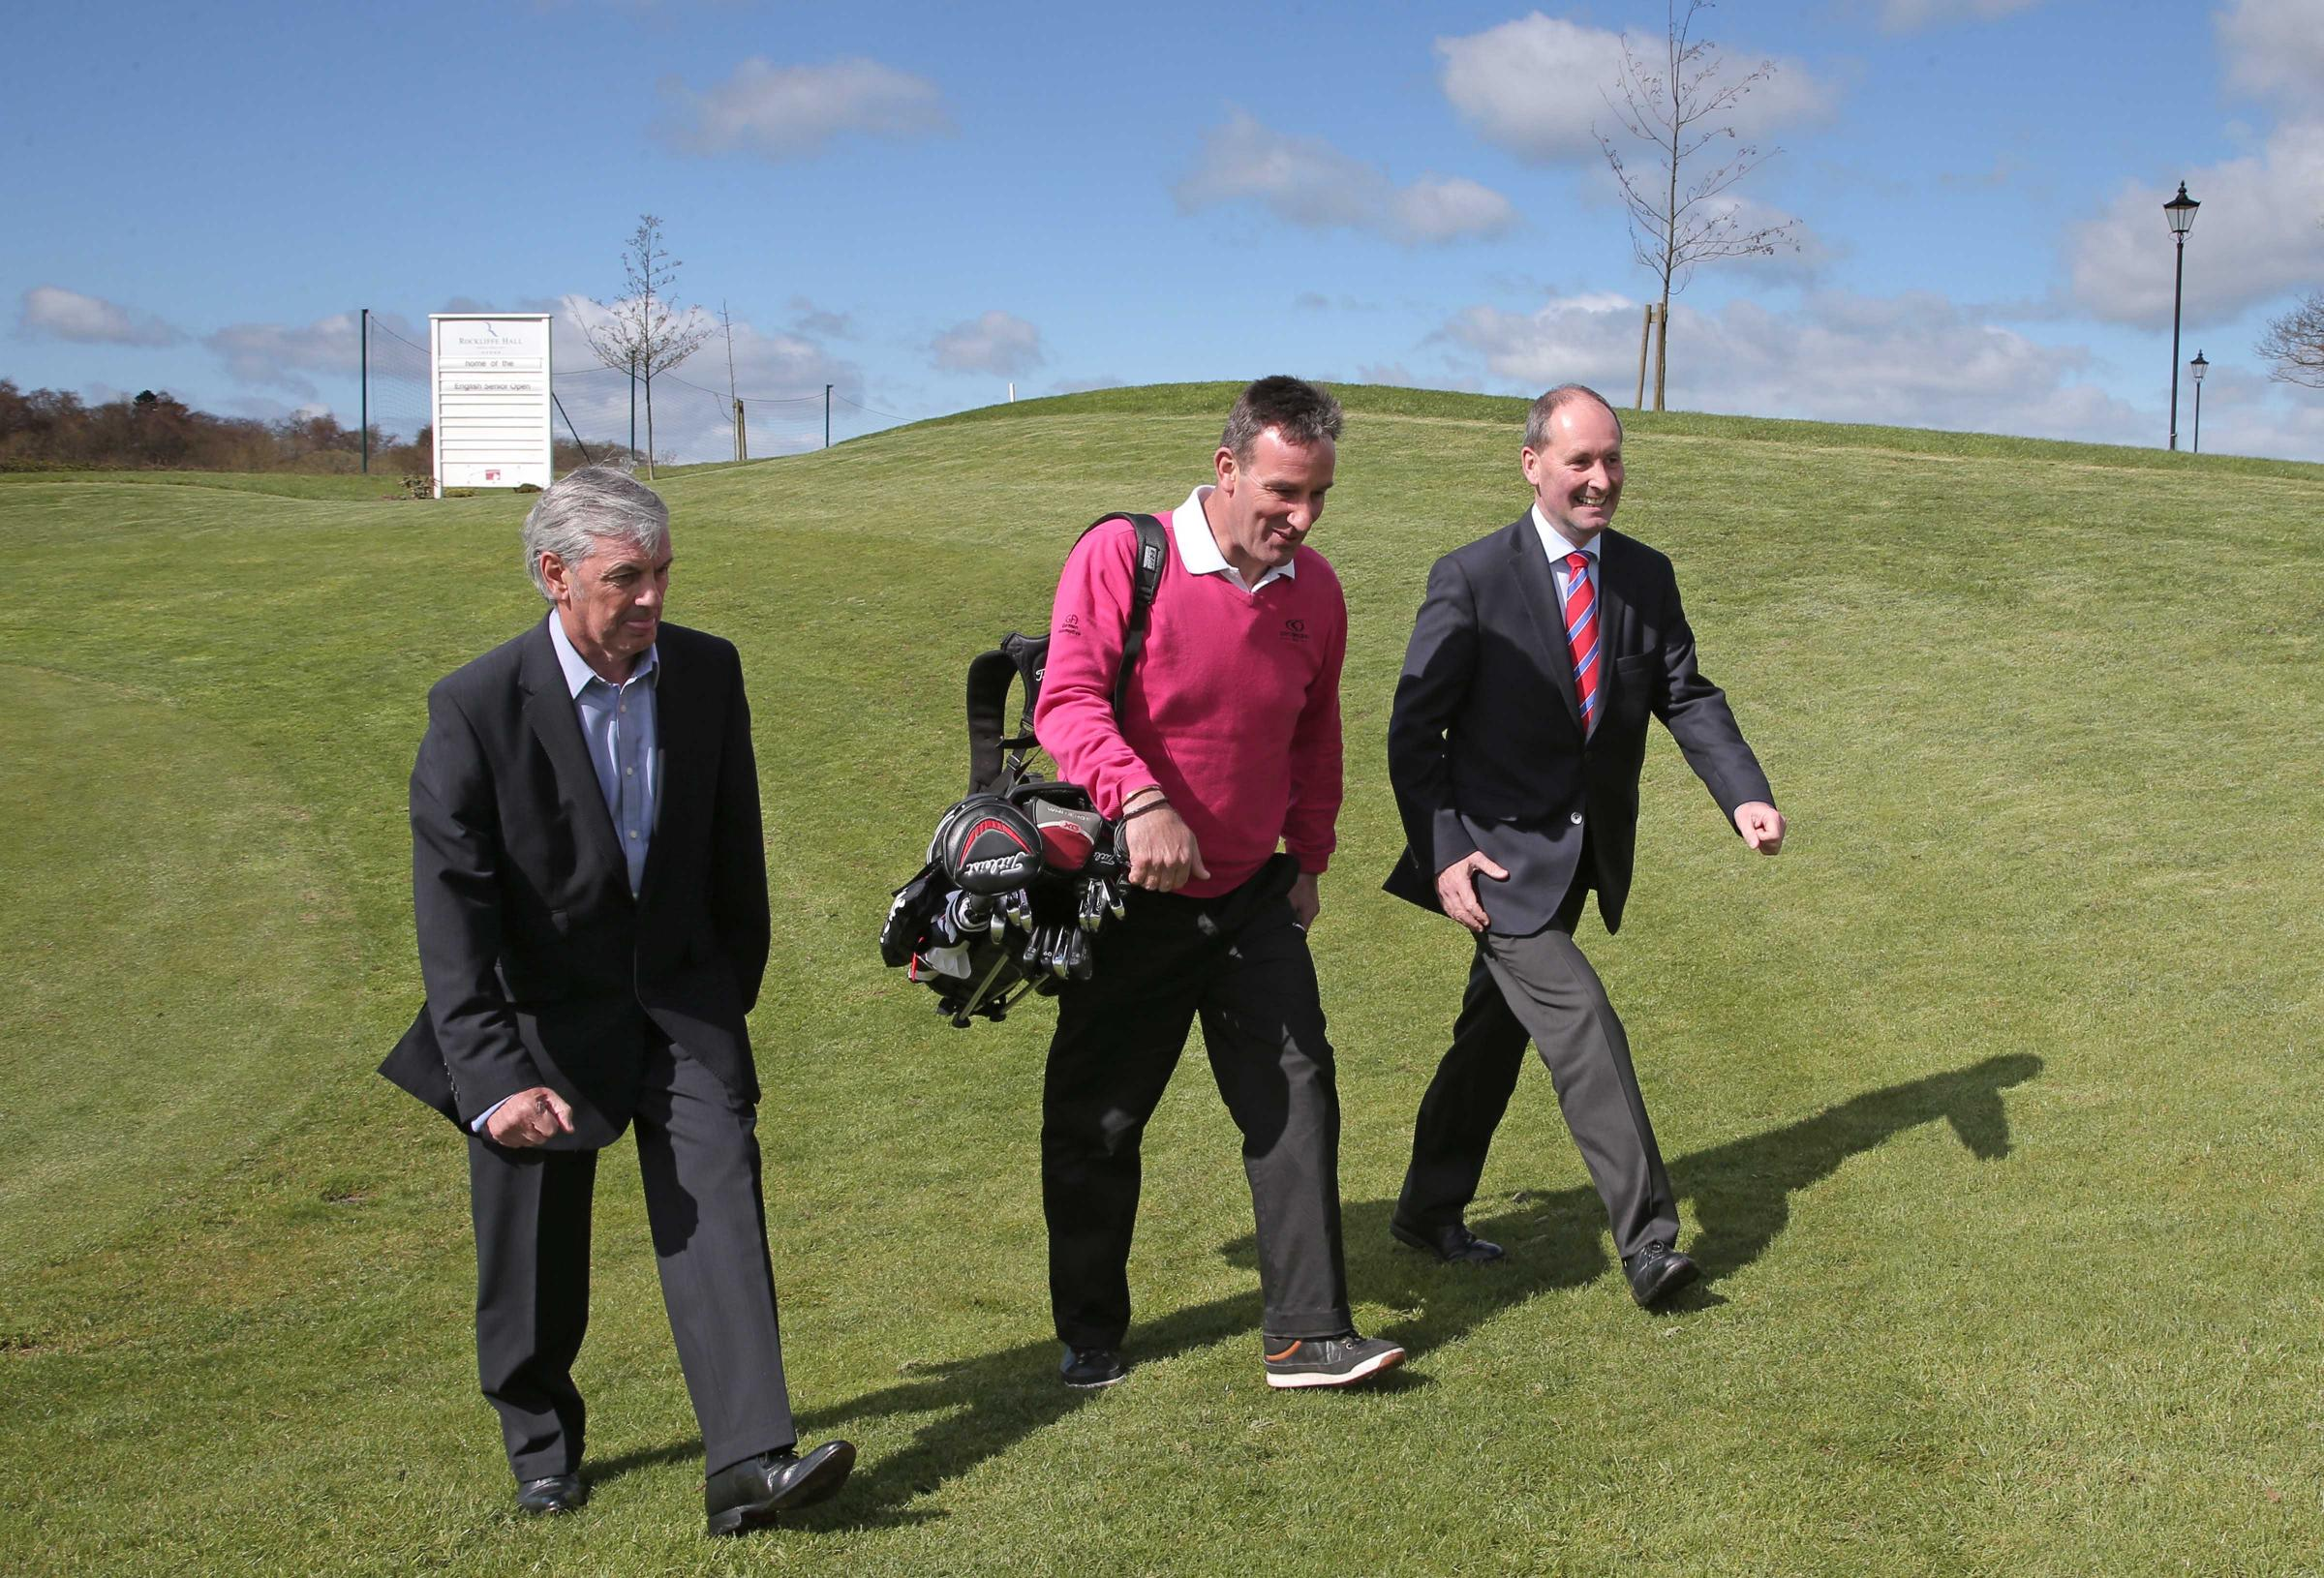 CHARITY EVENT: Golf champ Paul Wesselingh, centre, with Warwick Brindle, left, and Andy Stubbs, at the press conference at Rockliffe Hall where the return of the English Senior Open was announced